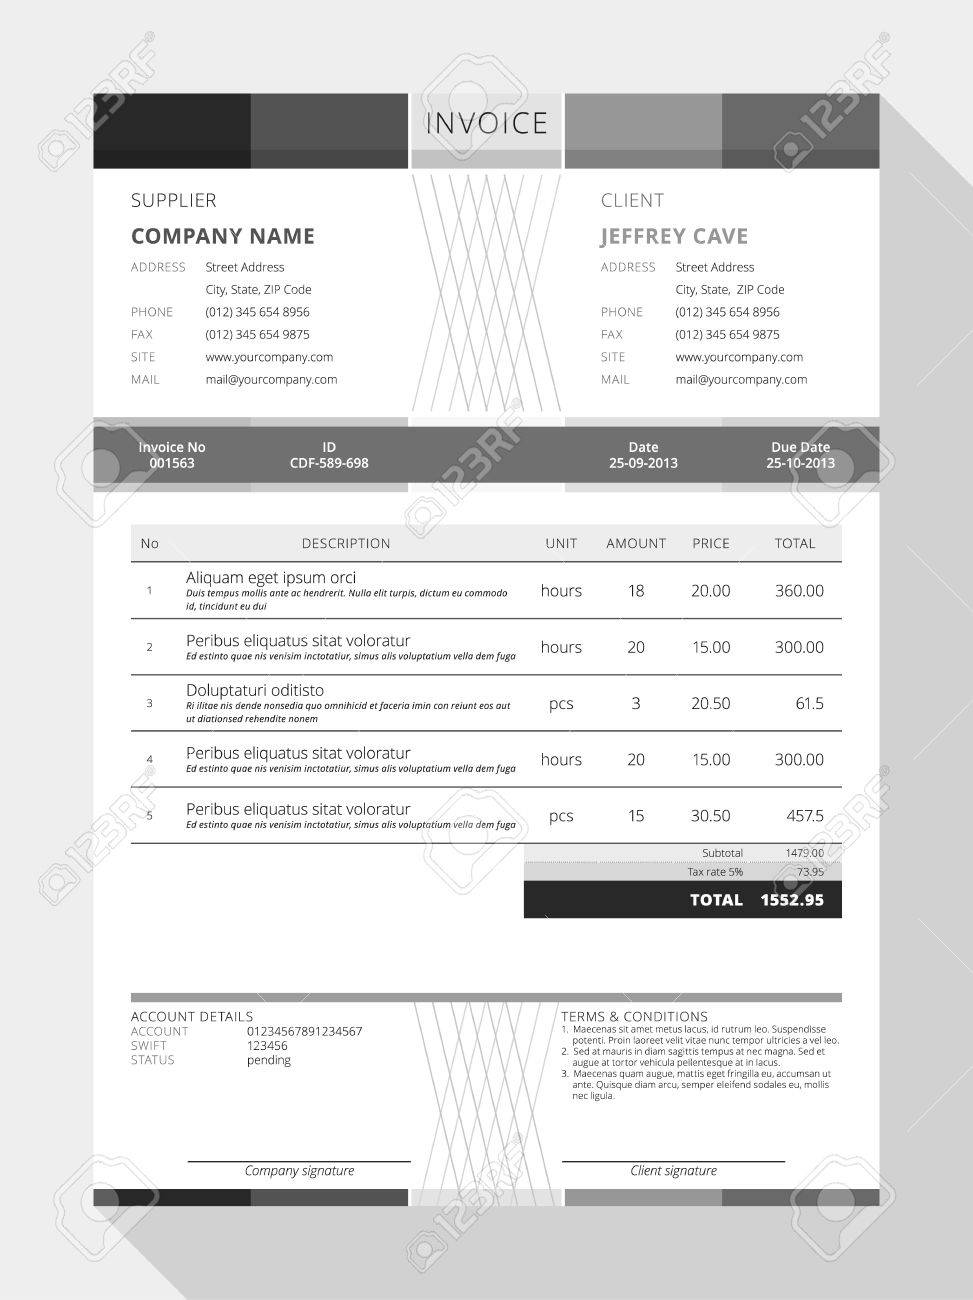 Maidofhonortoastus  Wonderful Design An Invoice  Professional Graphic Design Invoice  With Goodlooking Vector Customizable Invoice Form Template Design Vector   Design An Invoice With Enchanting Invoice Download Free Also Vertex Invoice Template In Addition Google Apps Invoices And Proforma Invoice Means As Well As Online Invoicing Software Free Additionally On Invoice Discount From Happytomco With Maidofhonortoastus  Goodlooking Design An Invoice  Professional Graphic Design Invoice  With Enchanting Vector Customizable Invoice Form Template Design Vector   Design An Invoice And Wonderful Invoice Download Free Also Vertex Invoice Template In Addition Google Apps Invoices From Happytomco